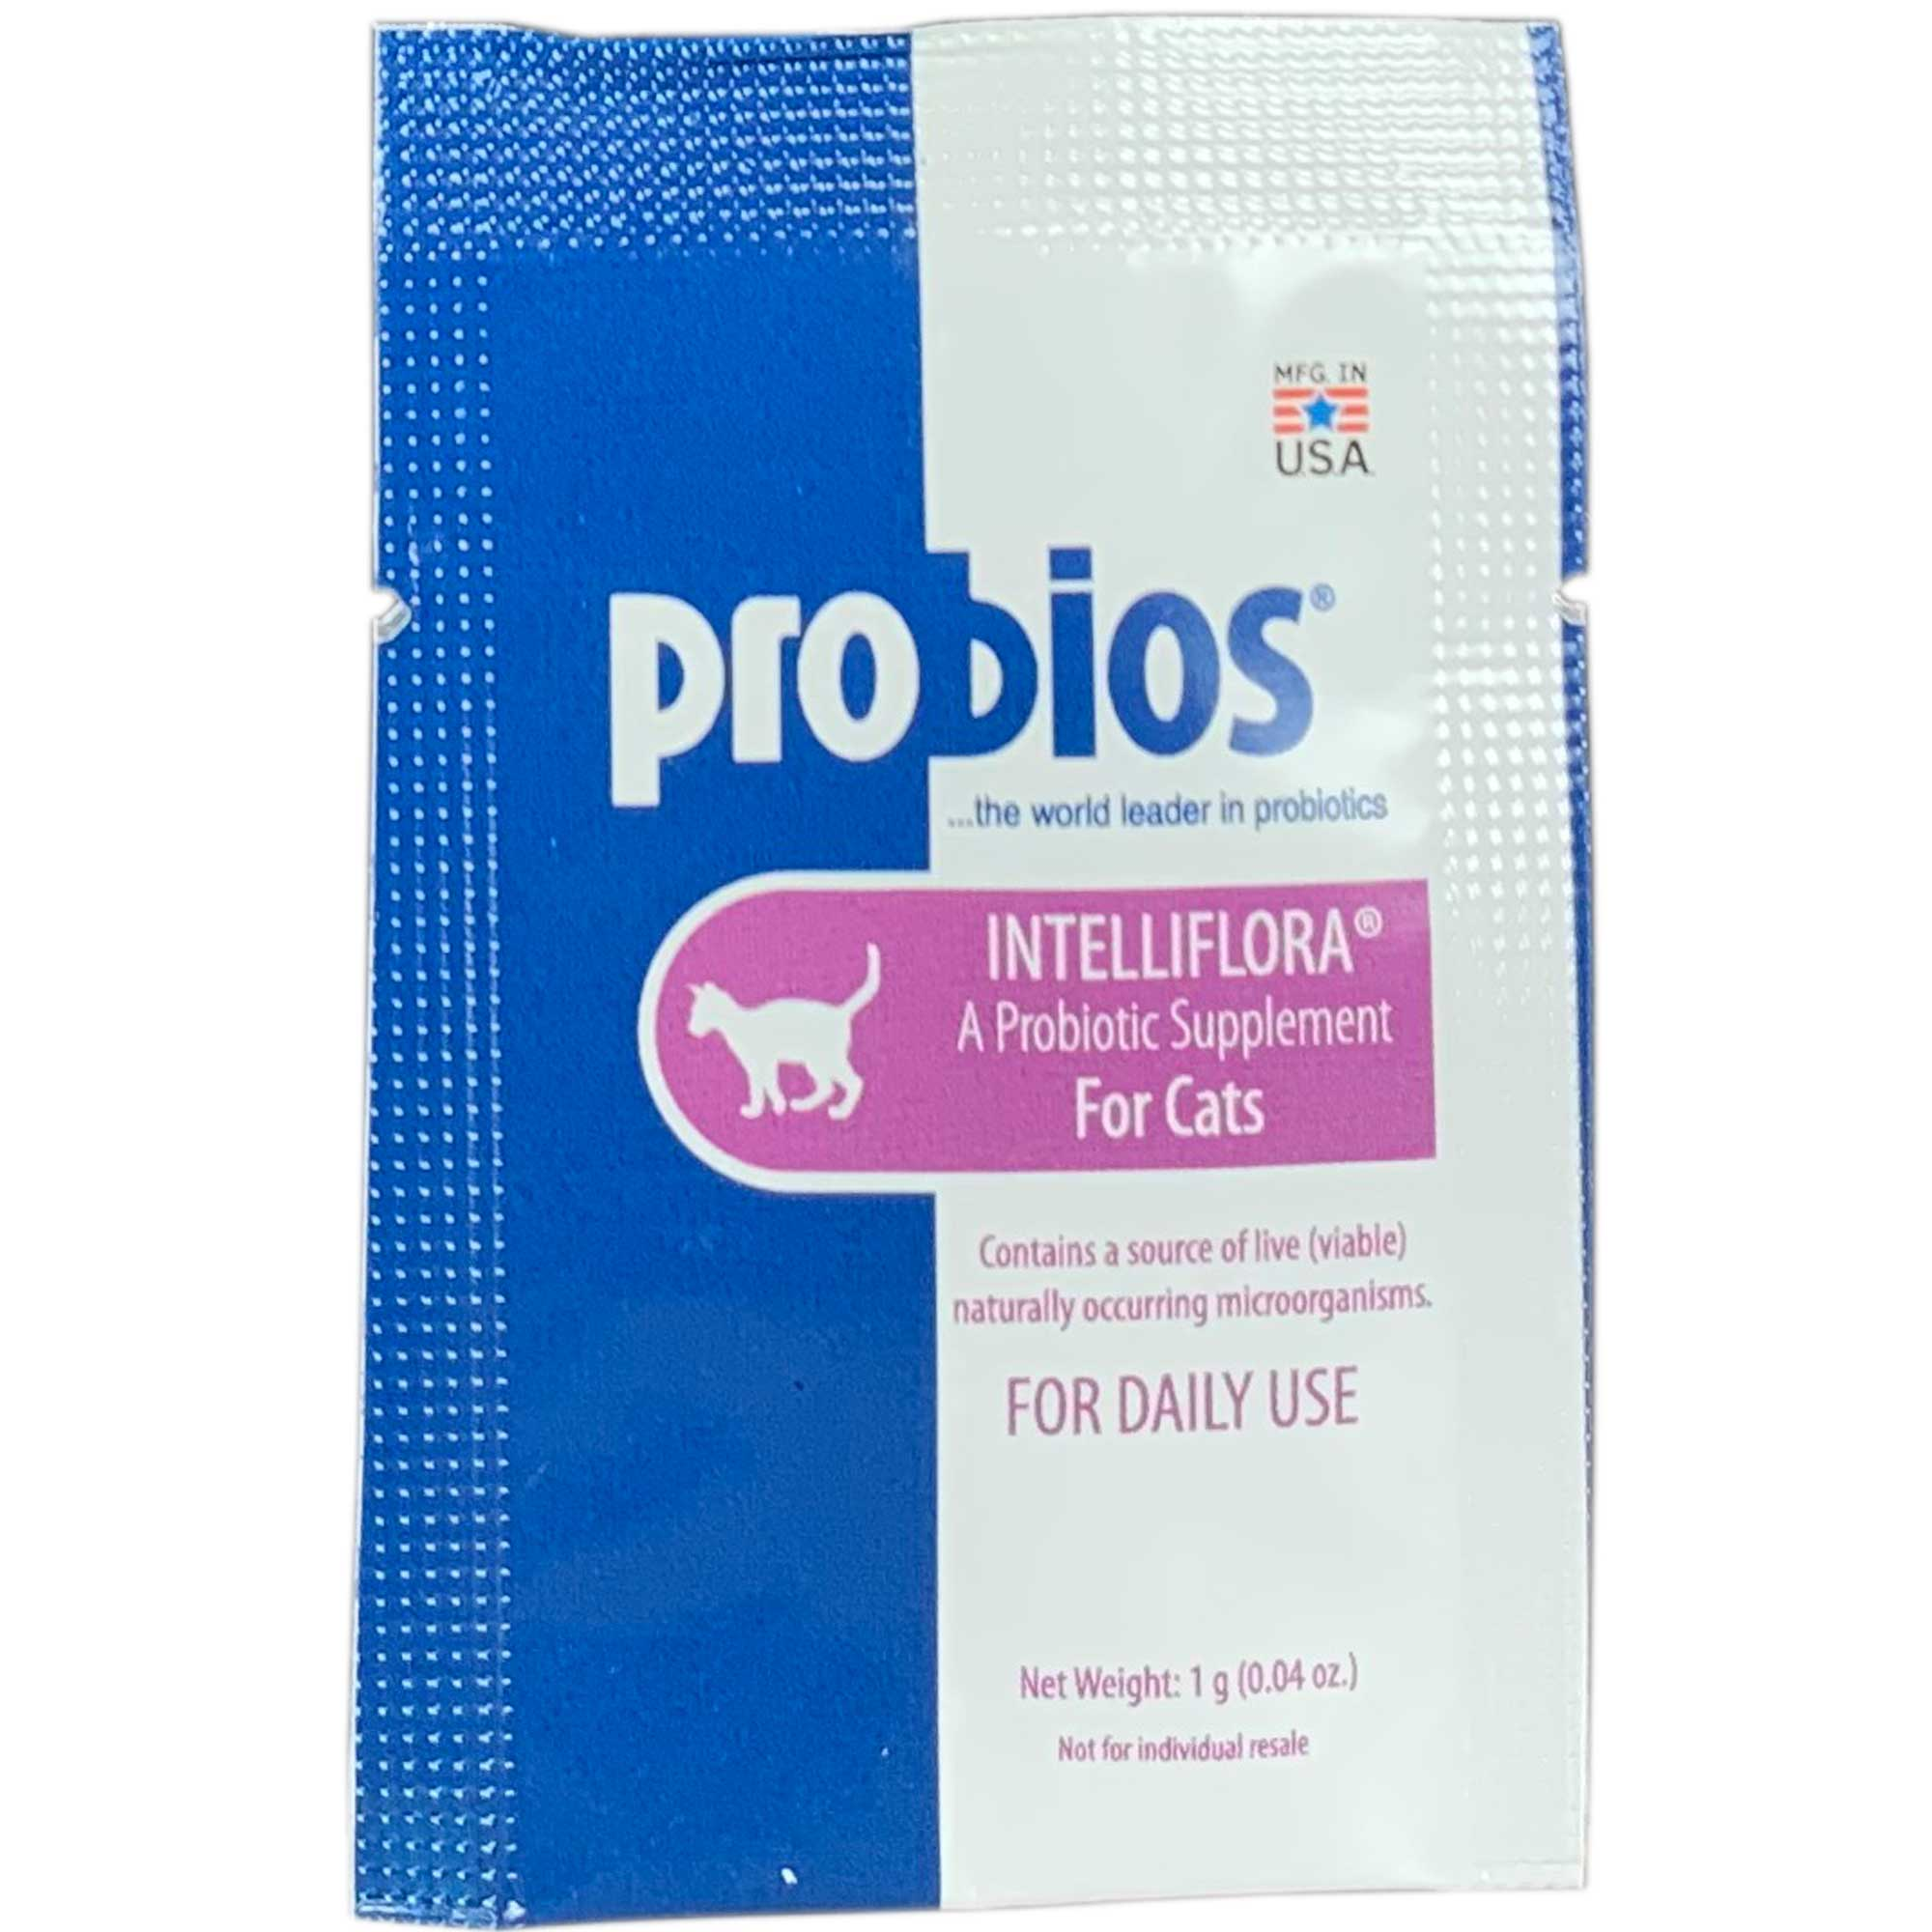 Probios Intelliflora for Cats 30 ct Thumbnail Image 1